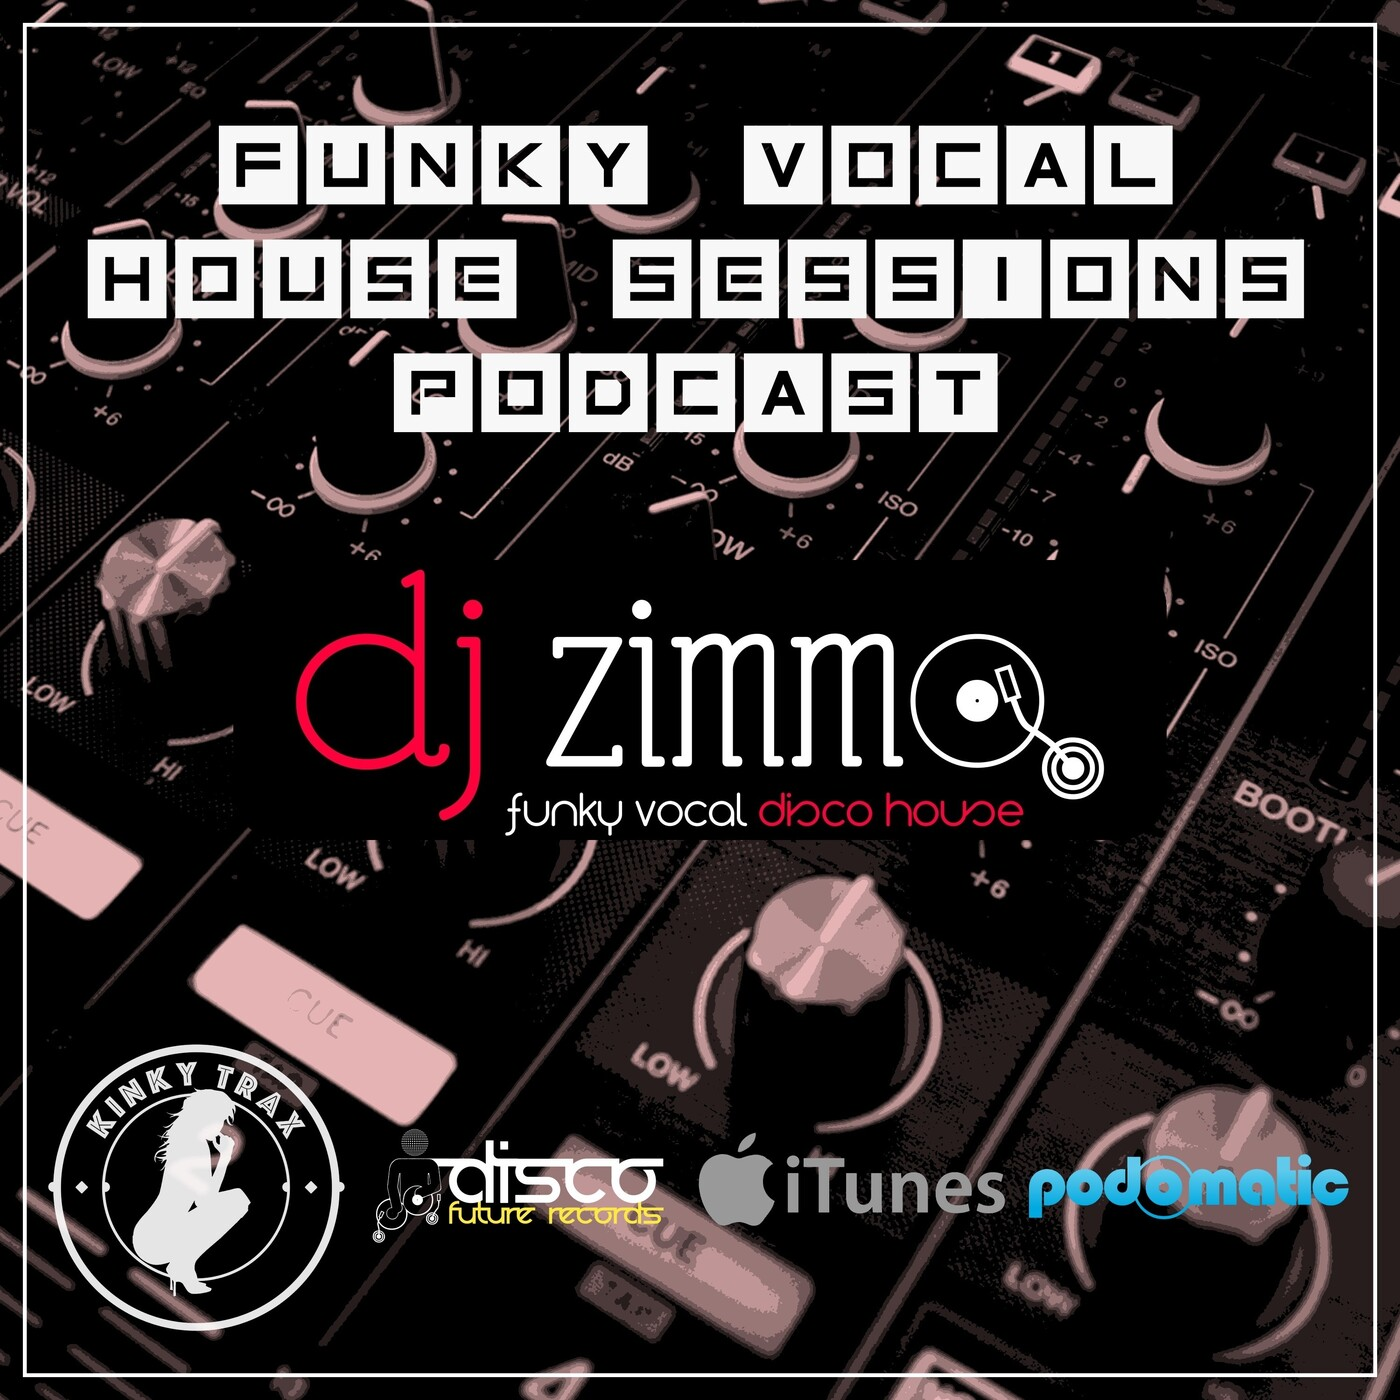 Tasty Recordings - Special Mix Jan 2014